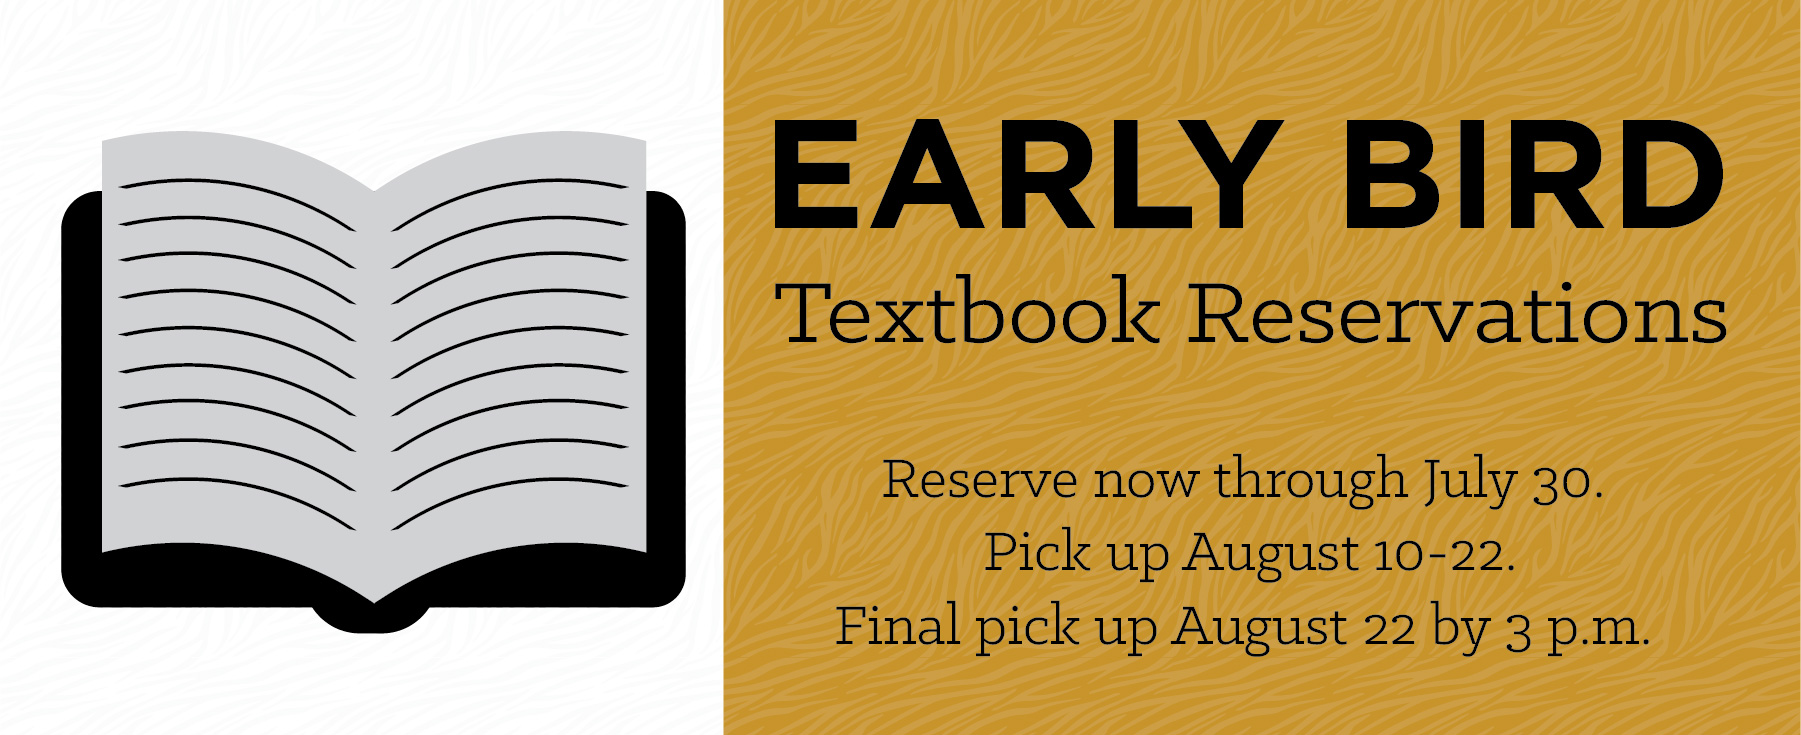 Reserve Your Textbooks